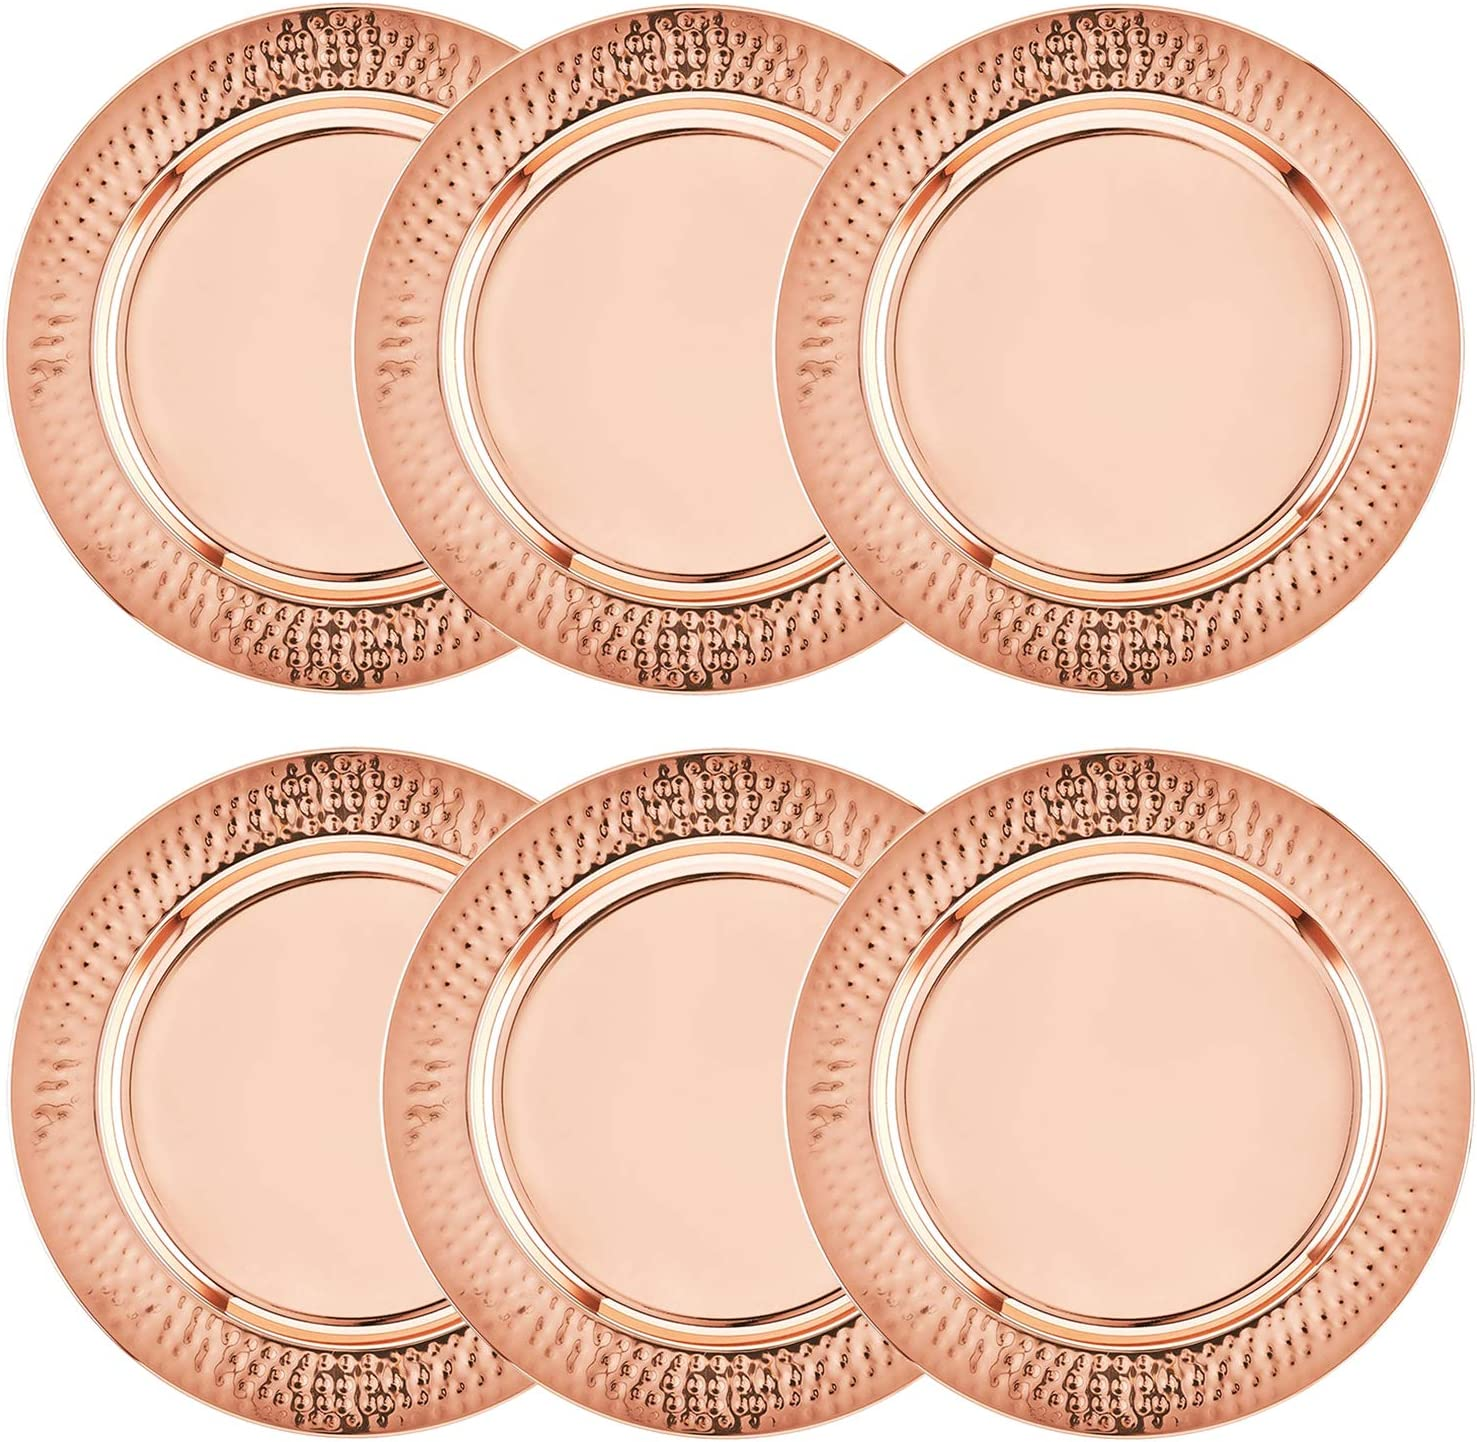 Colleta Home Copper Charger Plate 6 Pack 13 Inch Rose Gold Charger With Hammered Rim Copper Charger Plate Set Amazon Ca Home Kitchen